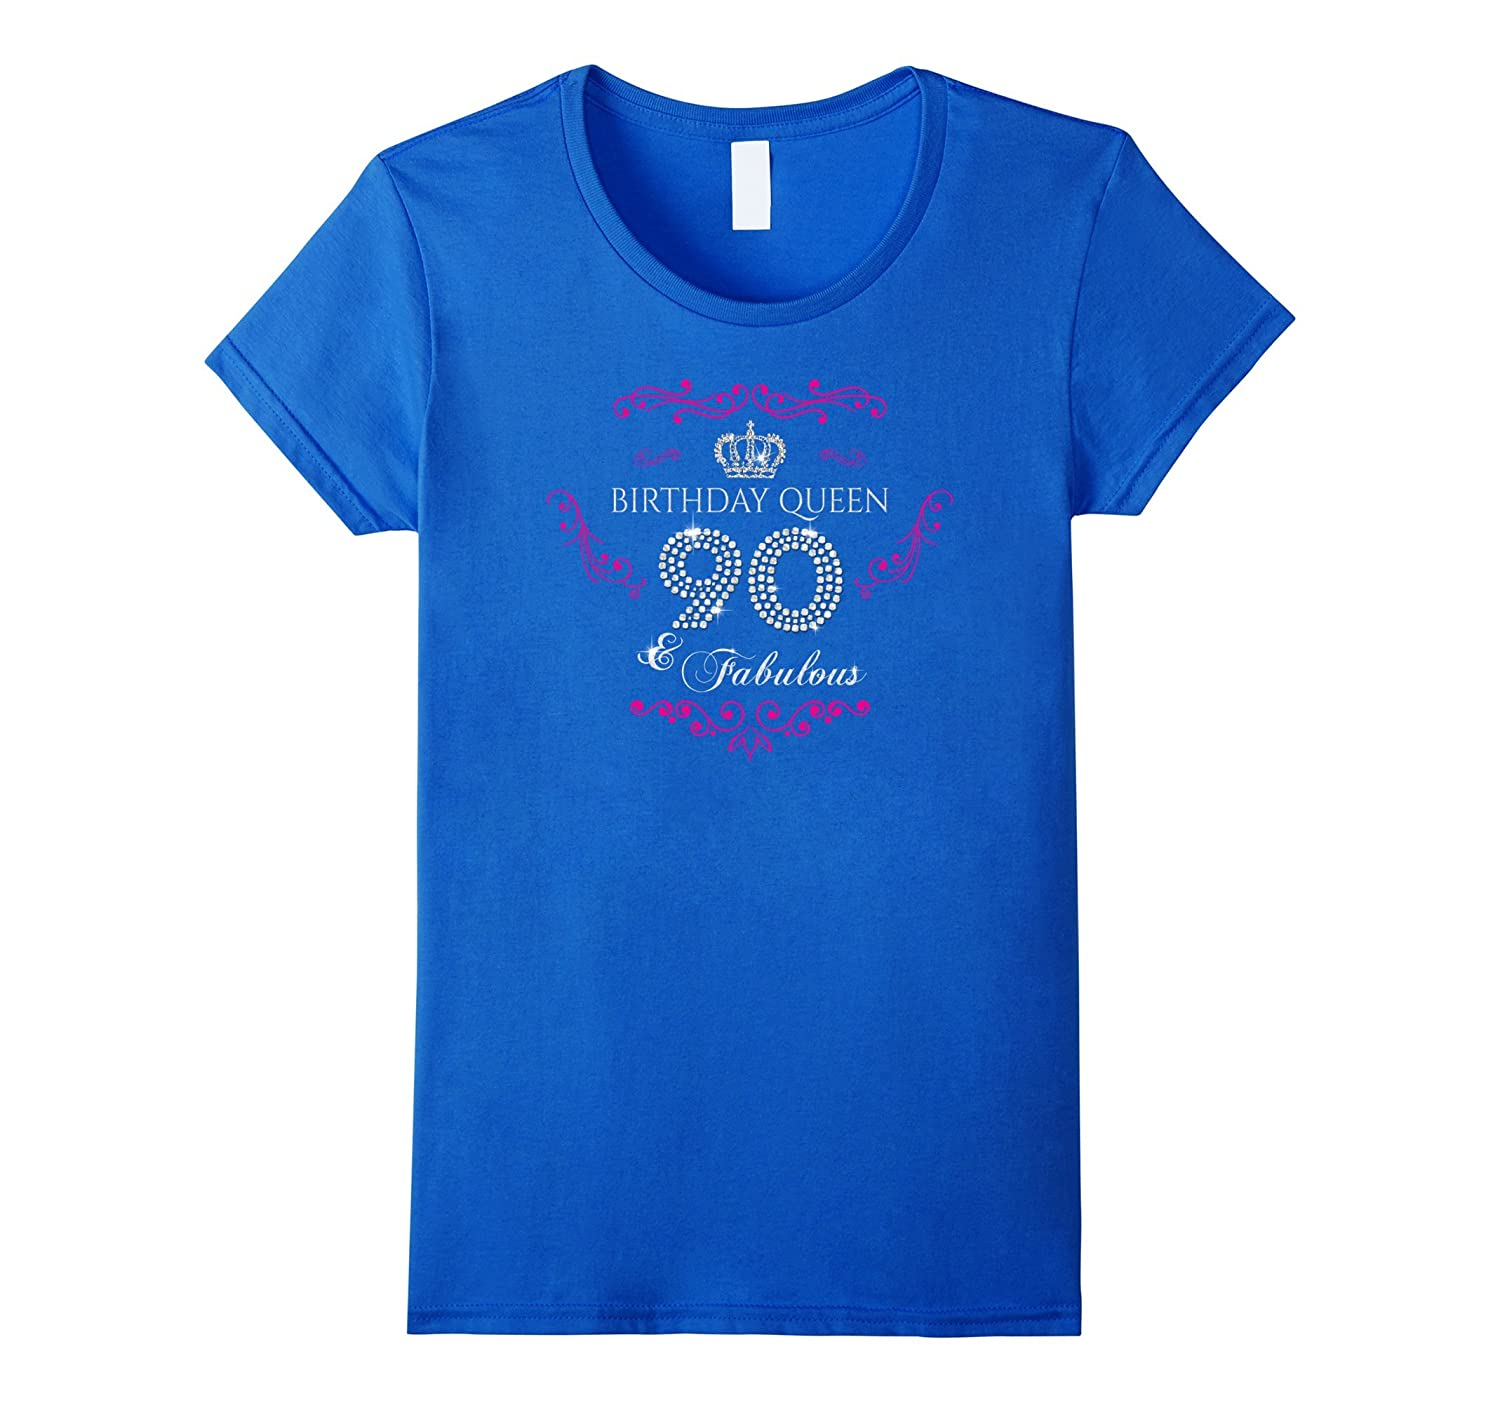 Womens 90th Birthday And Fabulous Shirts Queen T Shirt ANZ